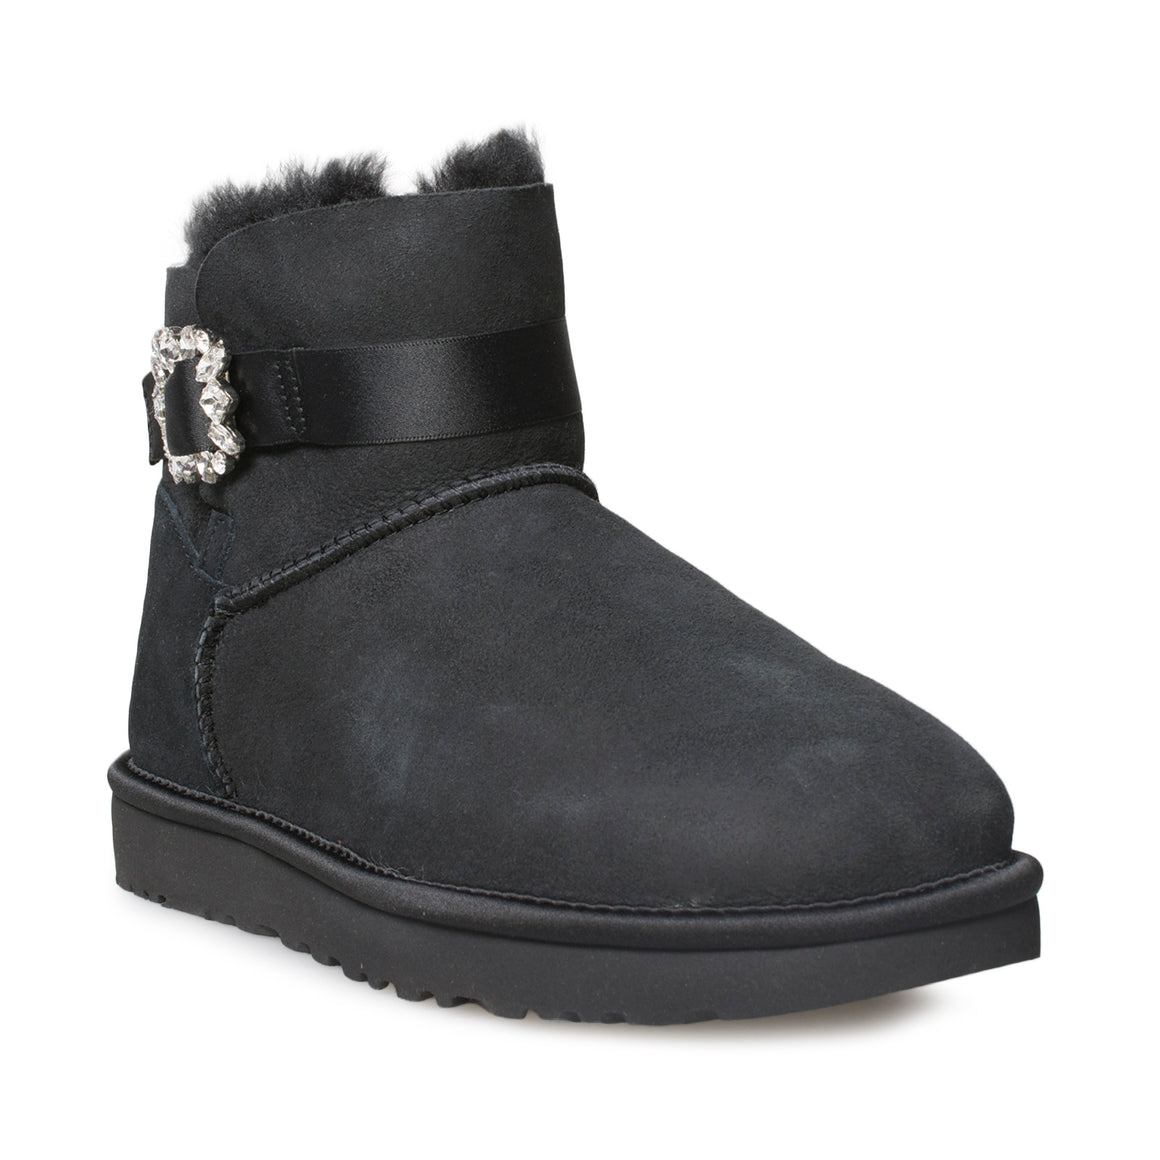 UGG Mini Side Brooch Black Boots - Women's